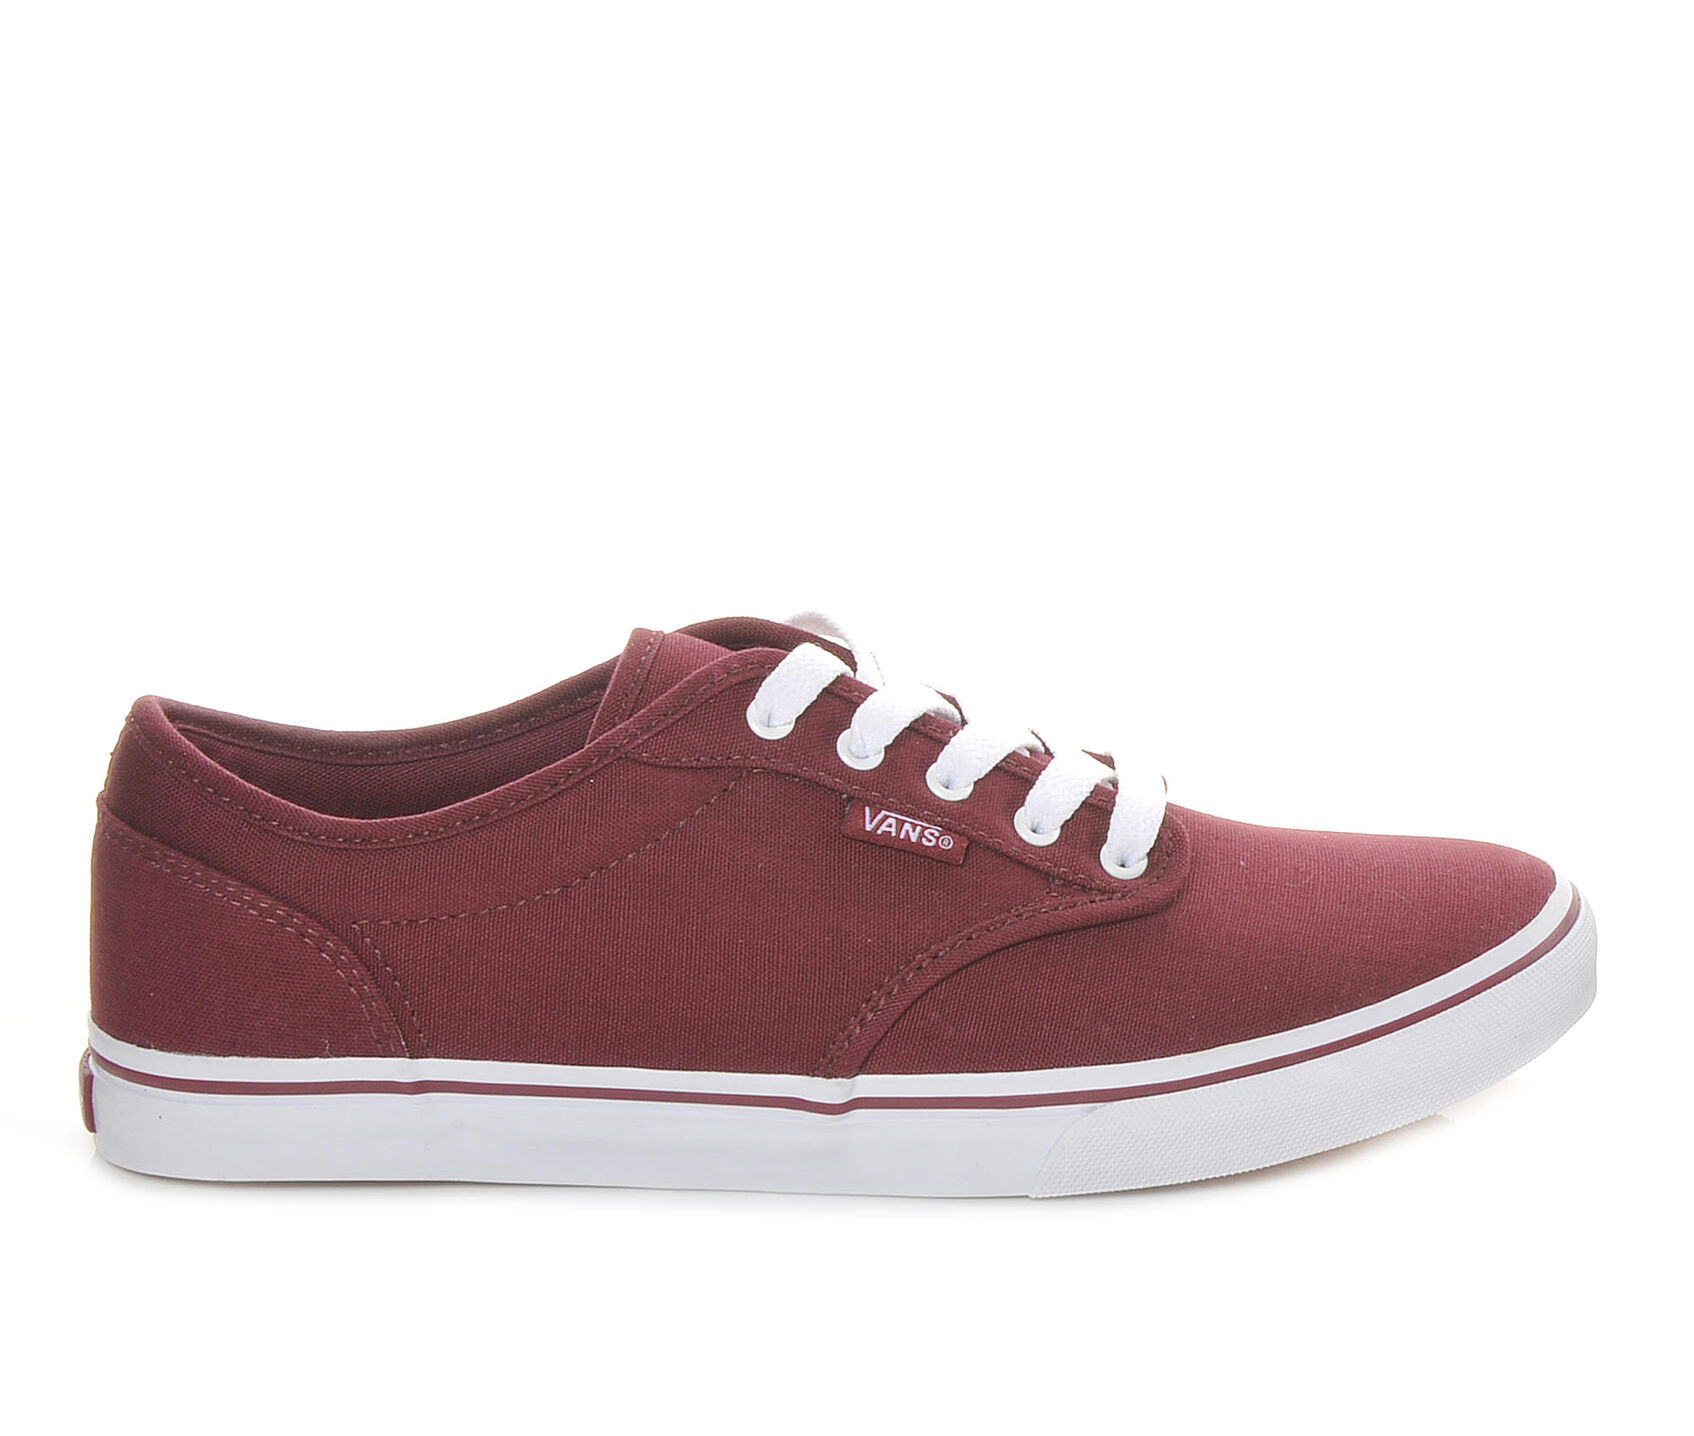 a6217577cad7 Women s Vans Atwood Low Skate Shoes